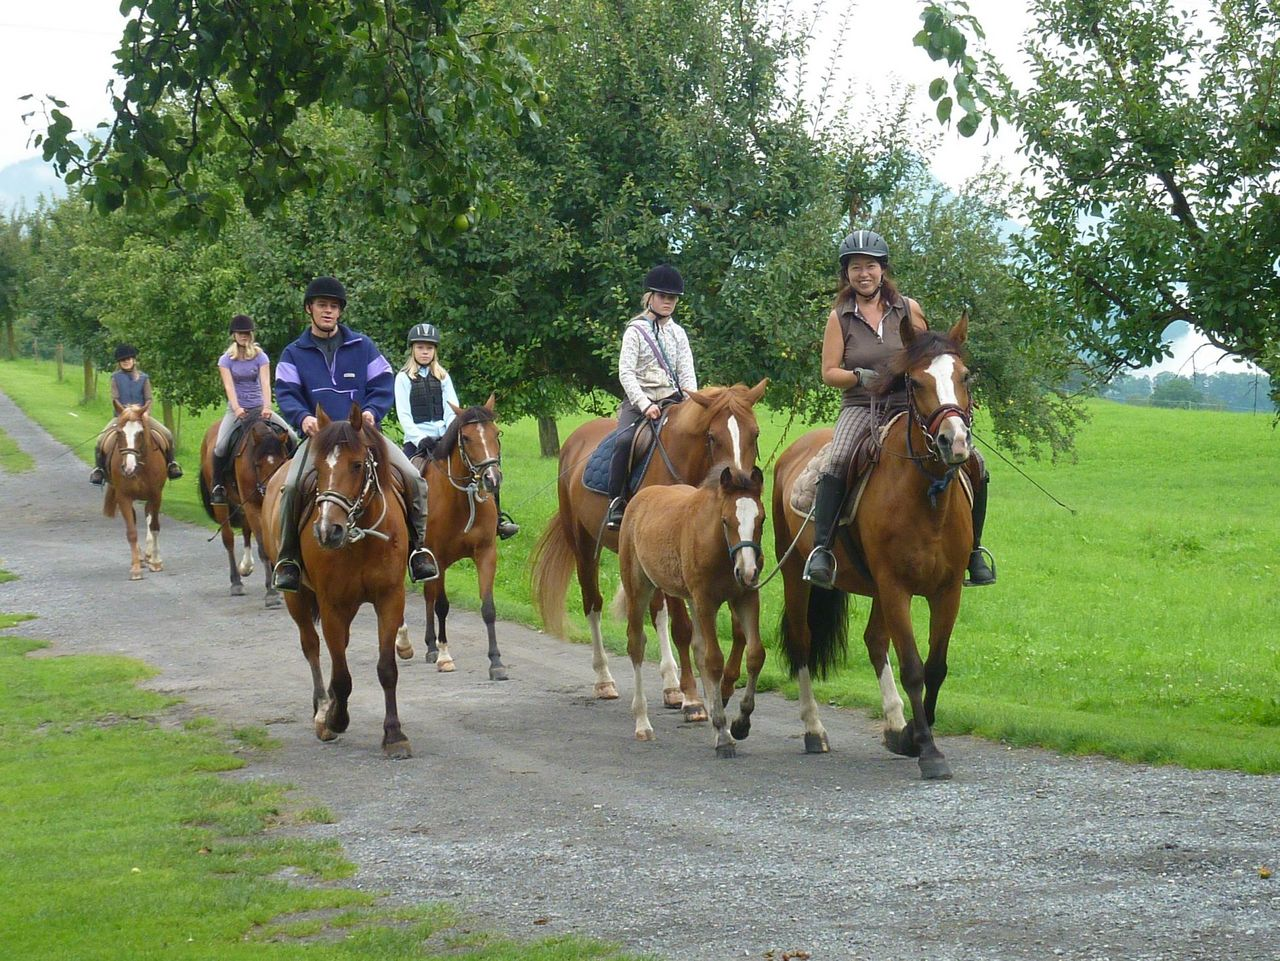 Horse riding at Felder's farm